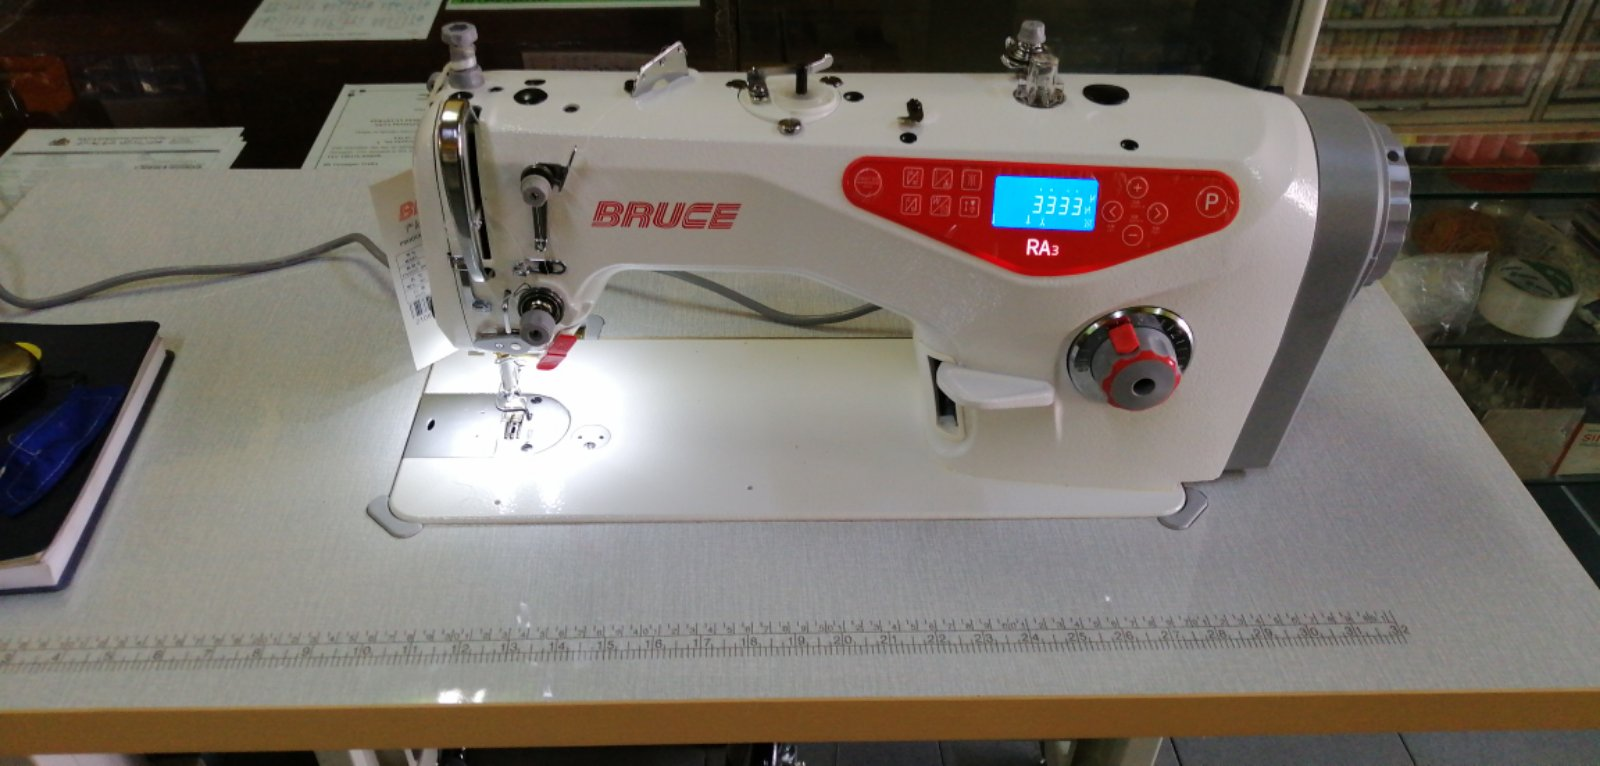 Bruce RA3 CQ Super Hi Speed Automatik Sewing Machine